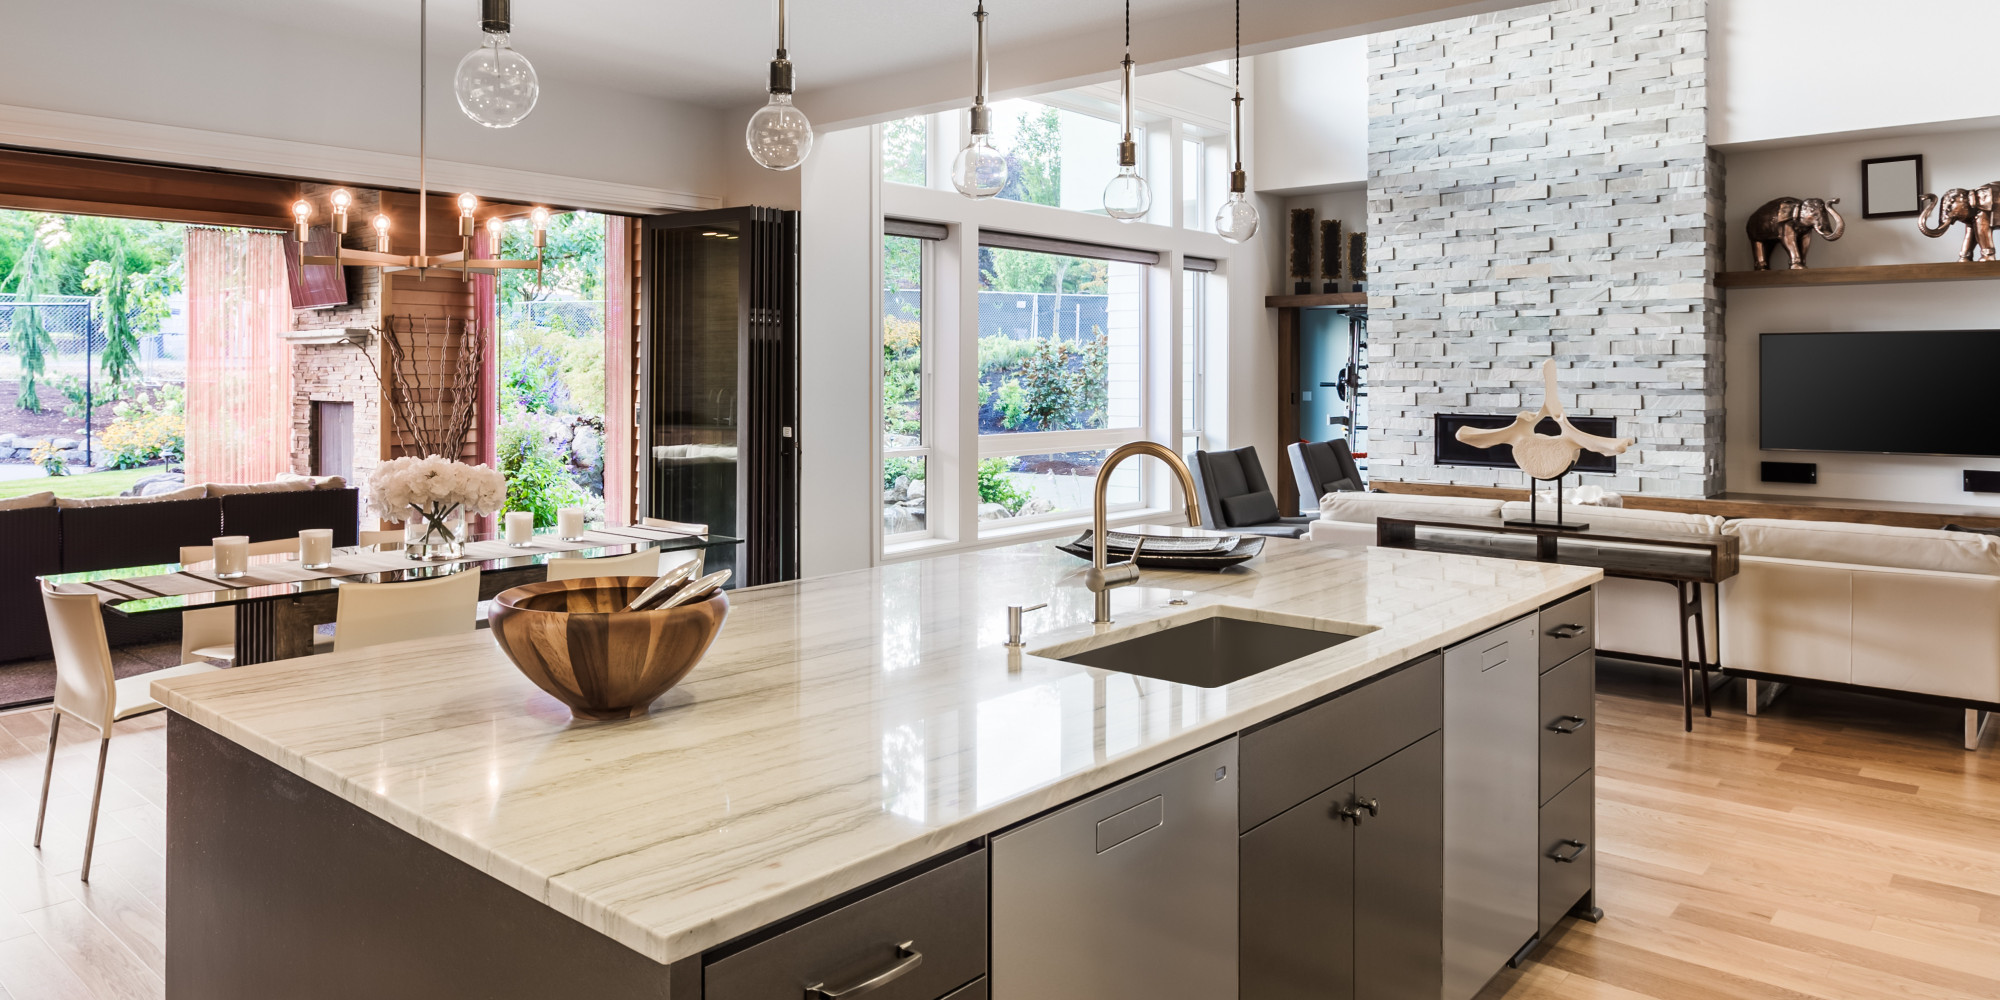 Easy Ways To Budget Kitchen And Bathroom Remodeling Costs HuffPost - Average cost of bathroom remodel seattle